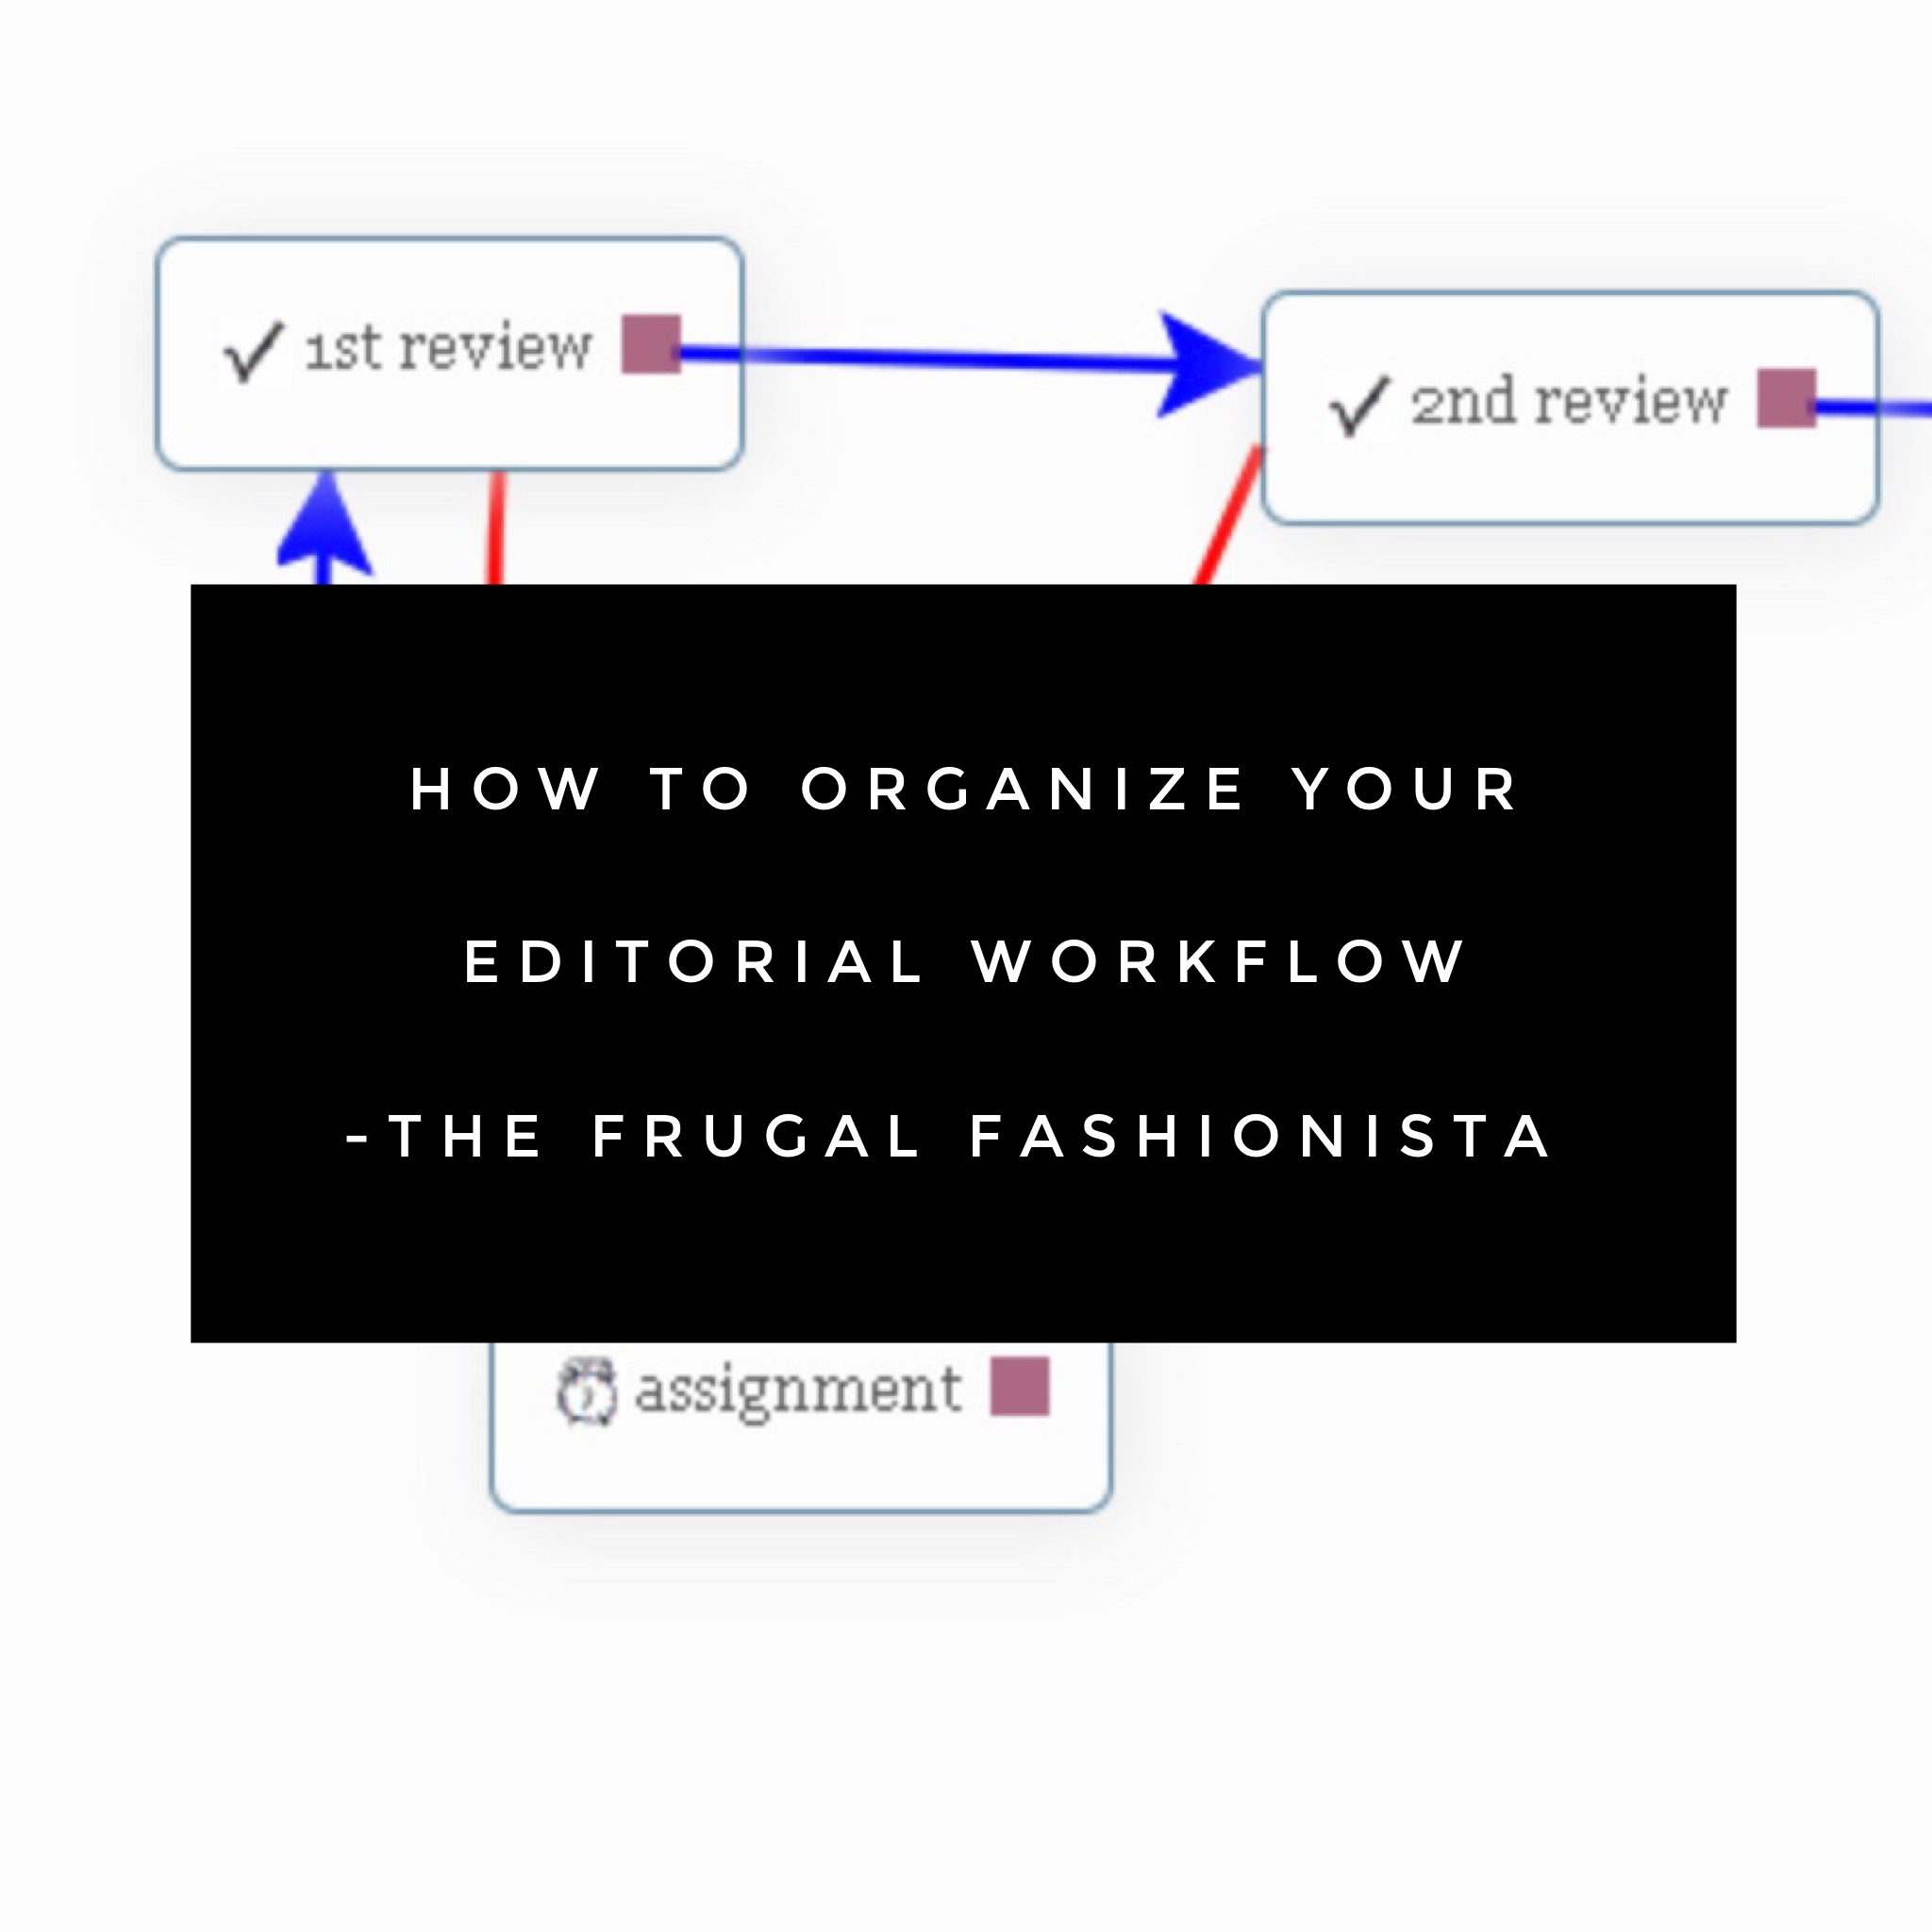 The Frugal Fashionista: How to Organize Your Editorial Workflow